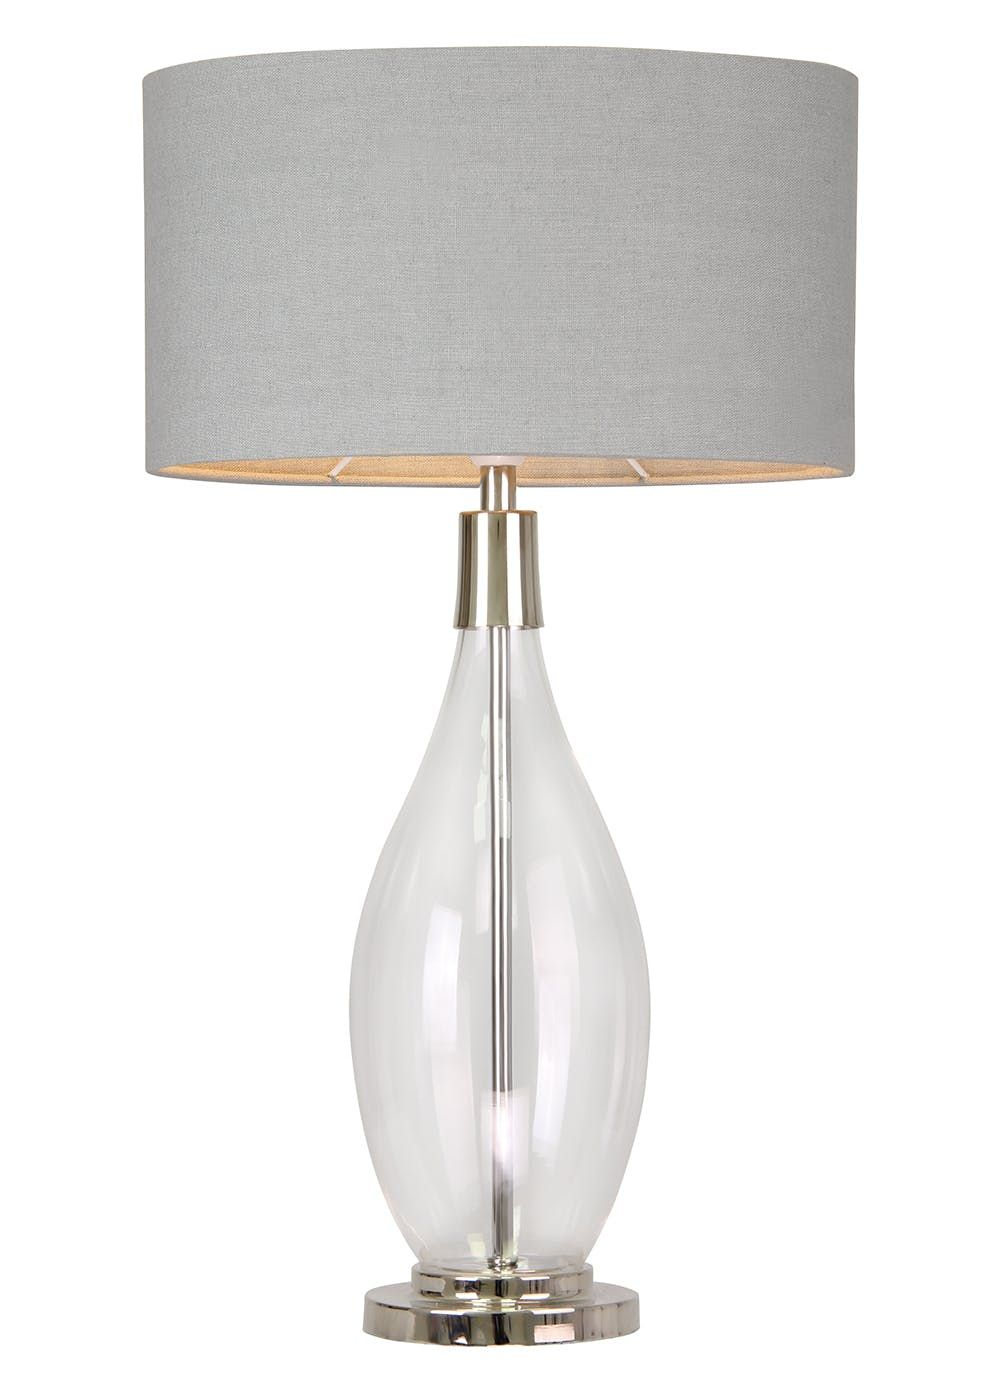 Hampstead Large Table Lamp H74cm X W42cm Grey Large Table Lamps Table Lamp Country Table Lamp